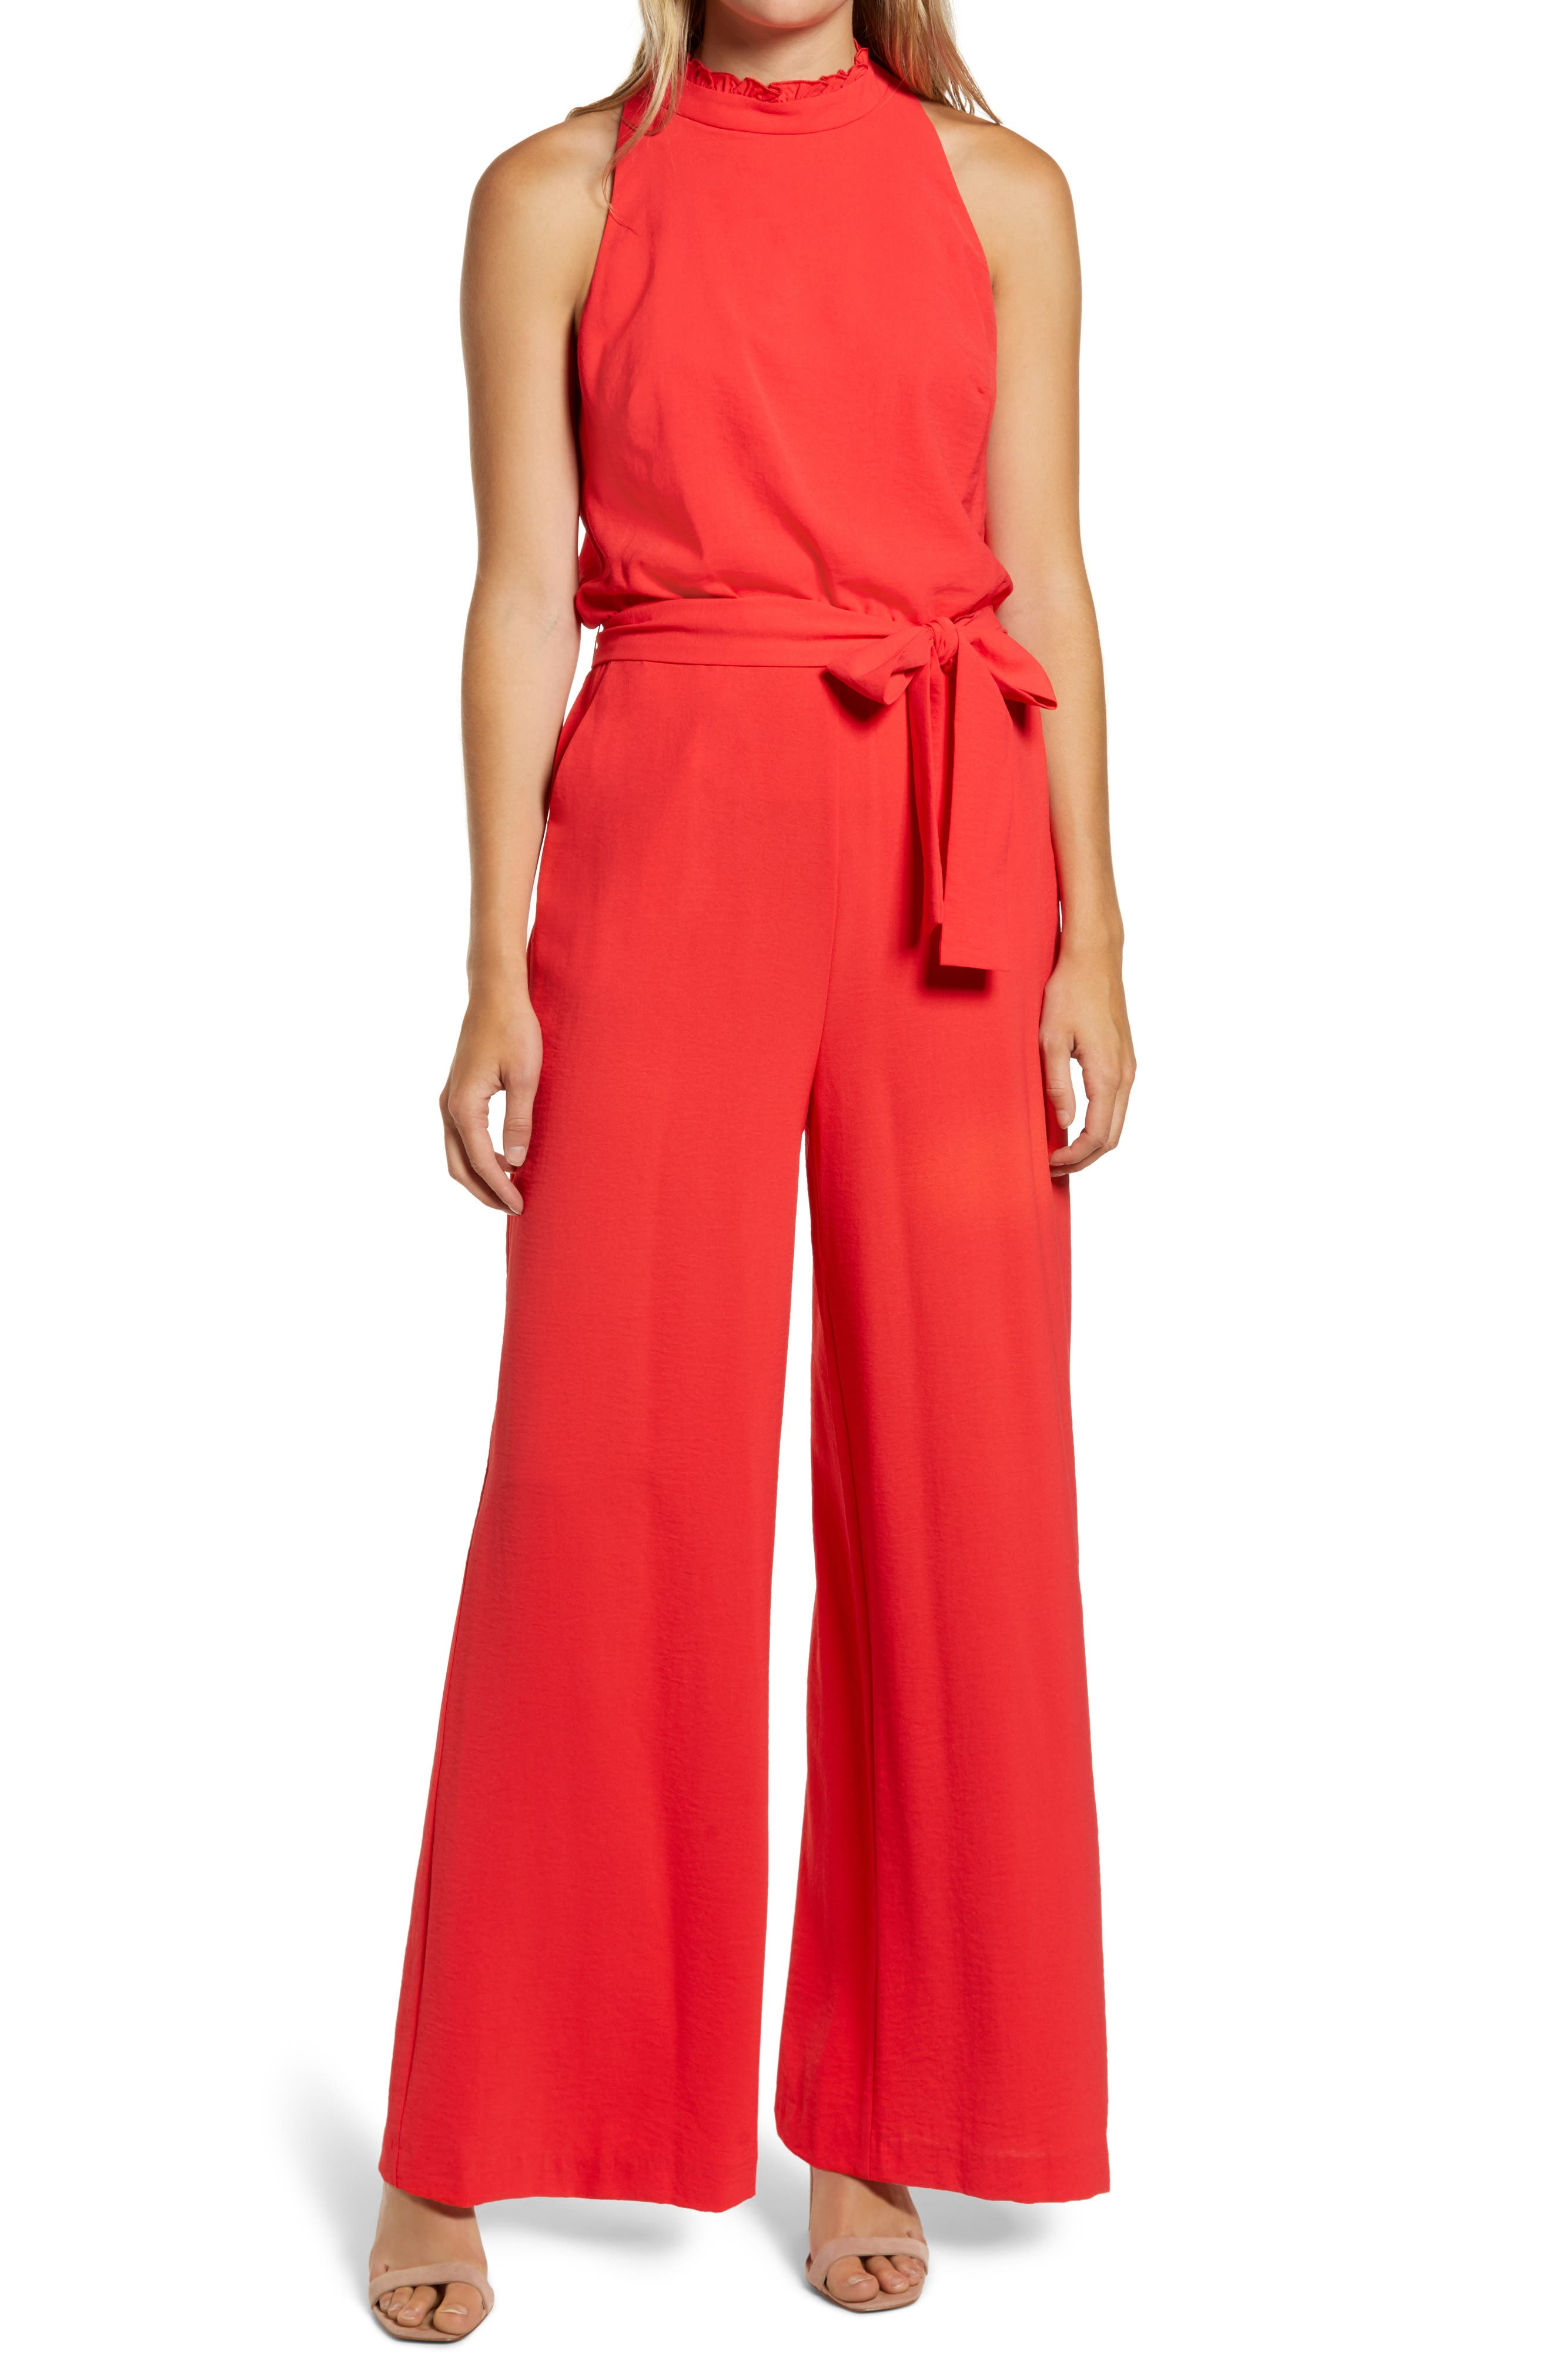 Vince Camuto Sleeveless Ruffle Neck Jumpsuit   Nordstrom